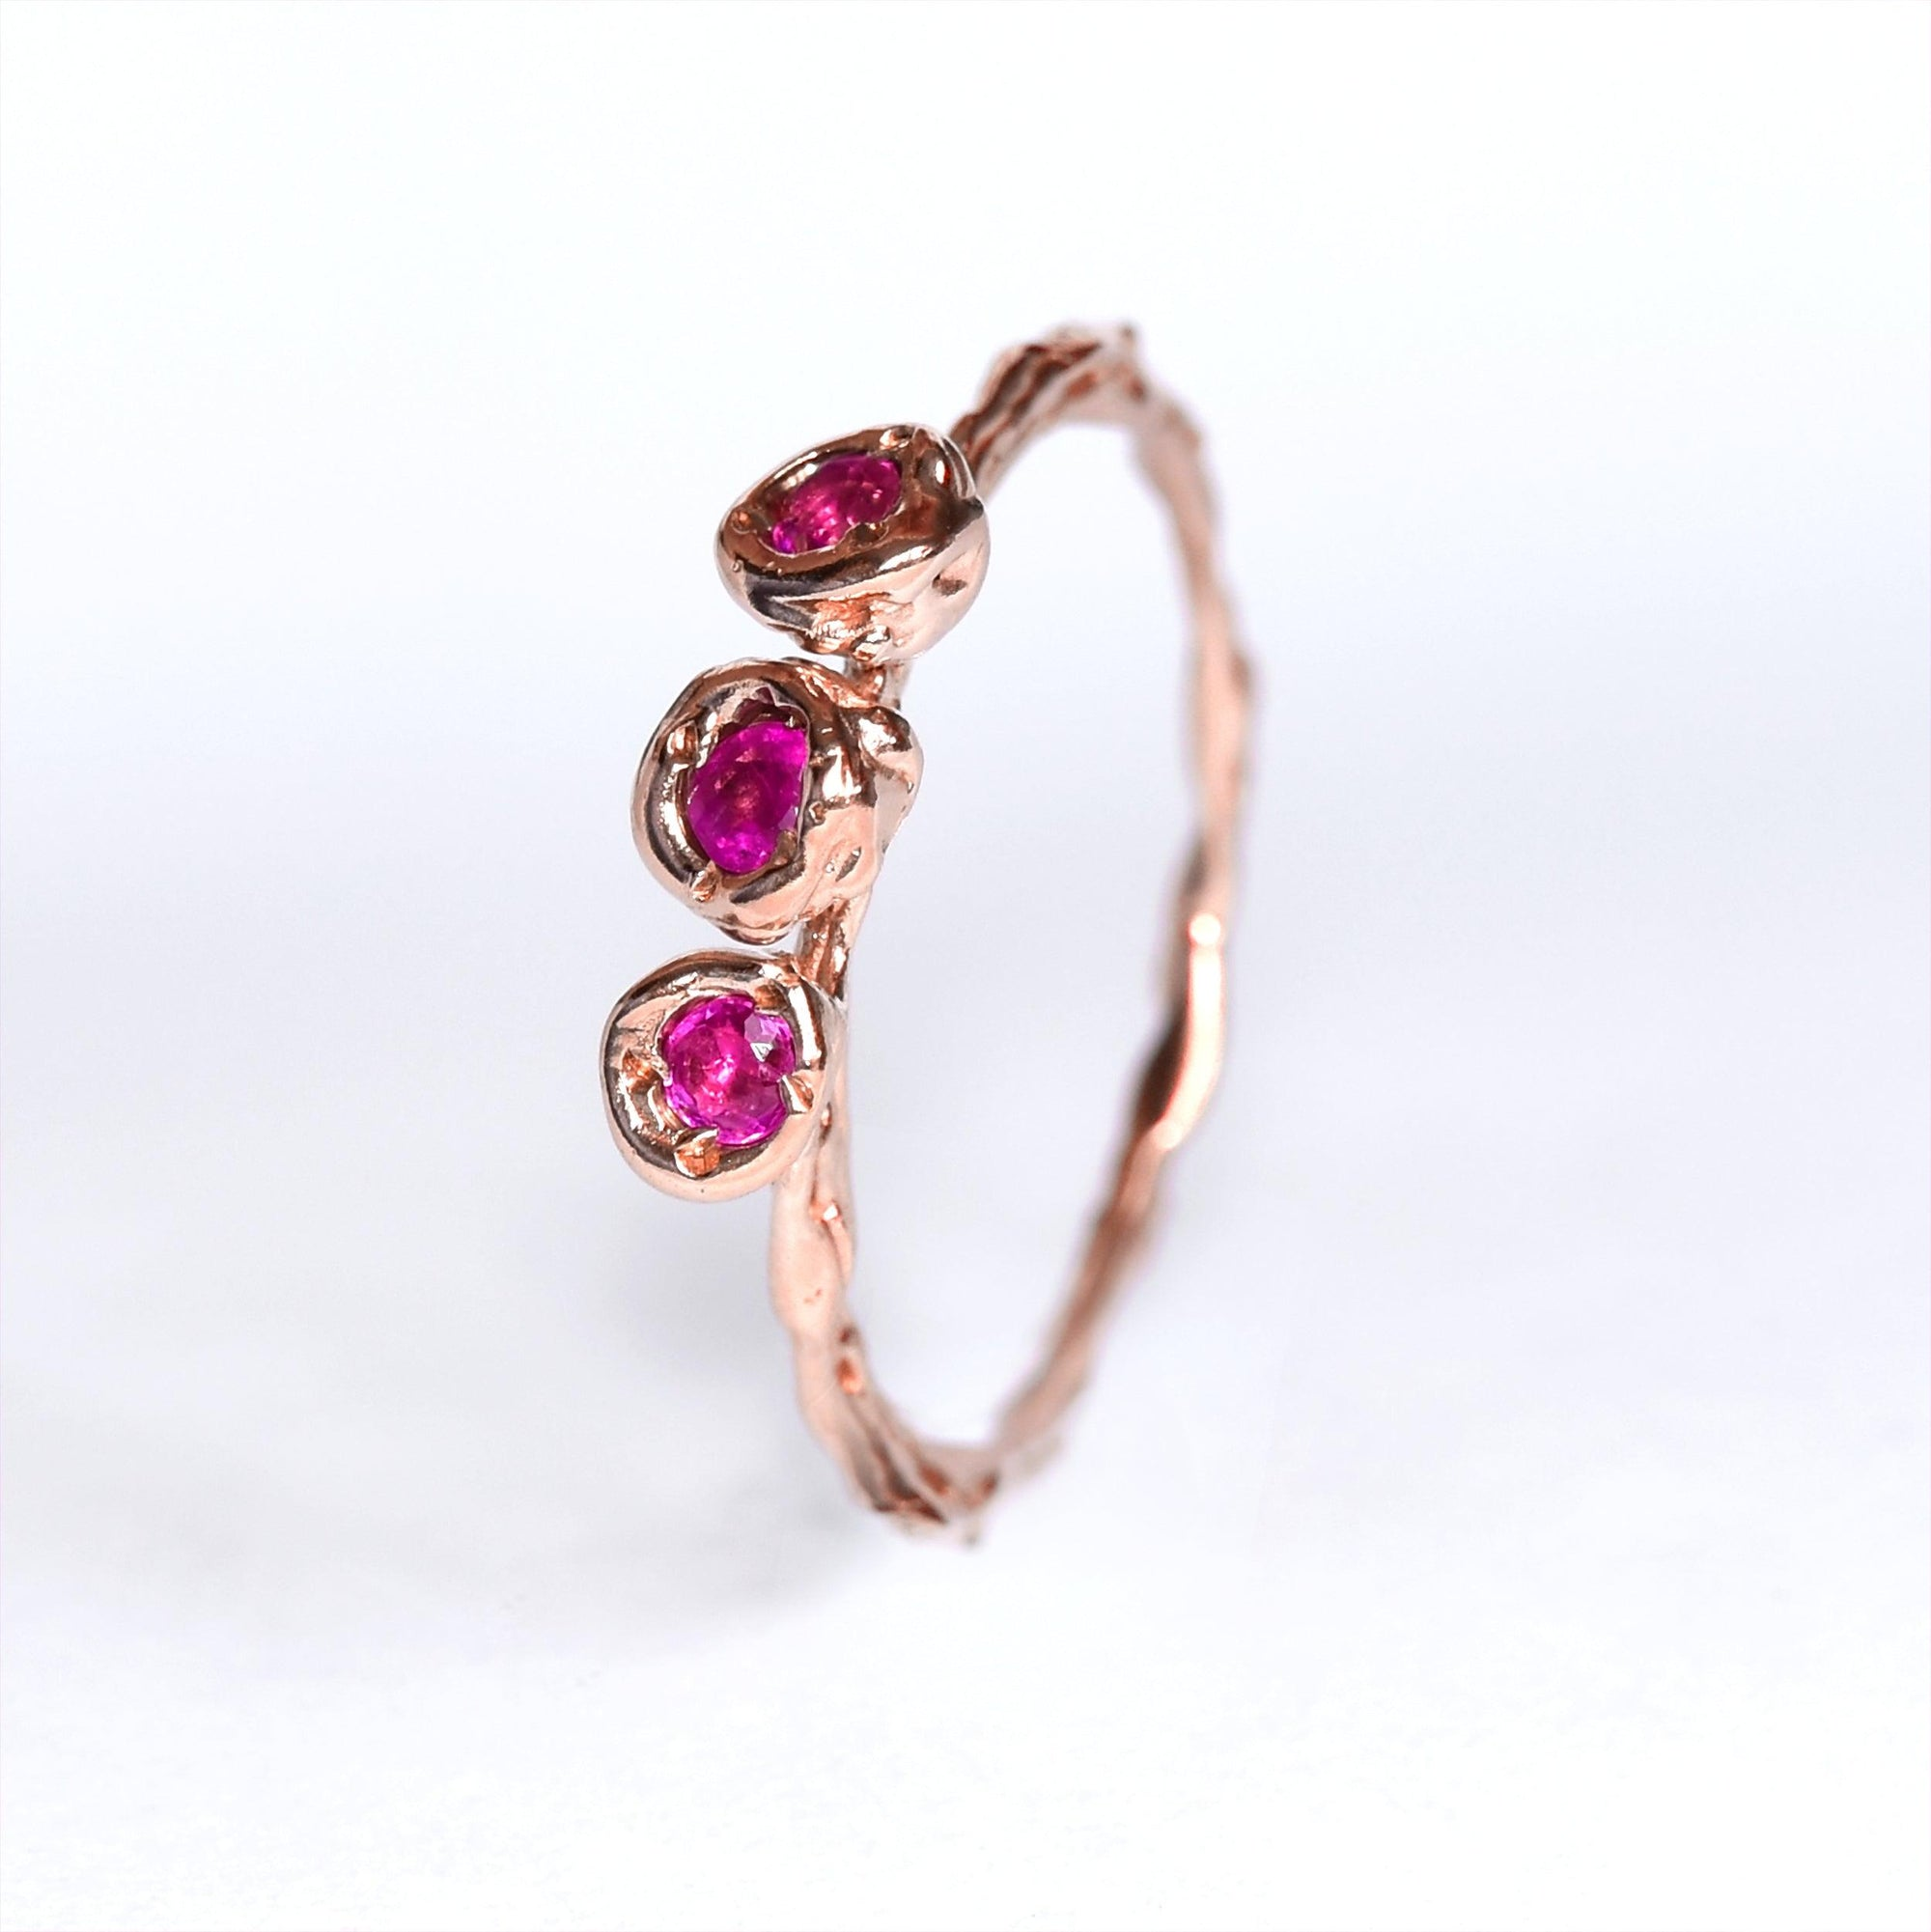 Rose Gold ring set with pink sapphires, one of a kind